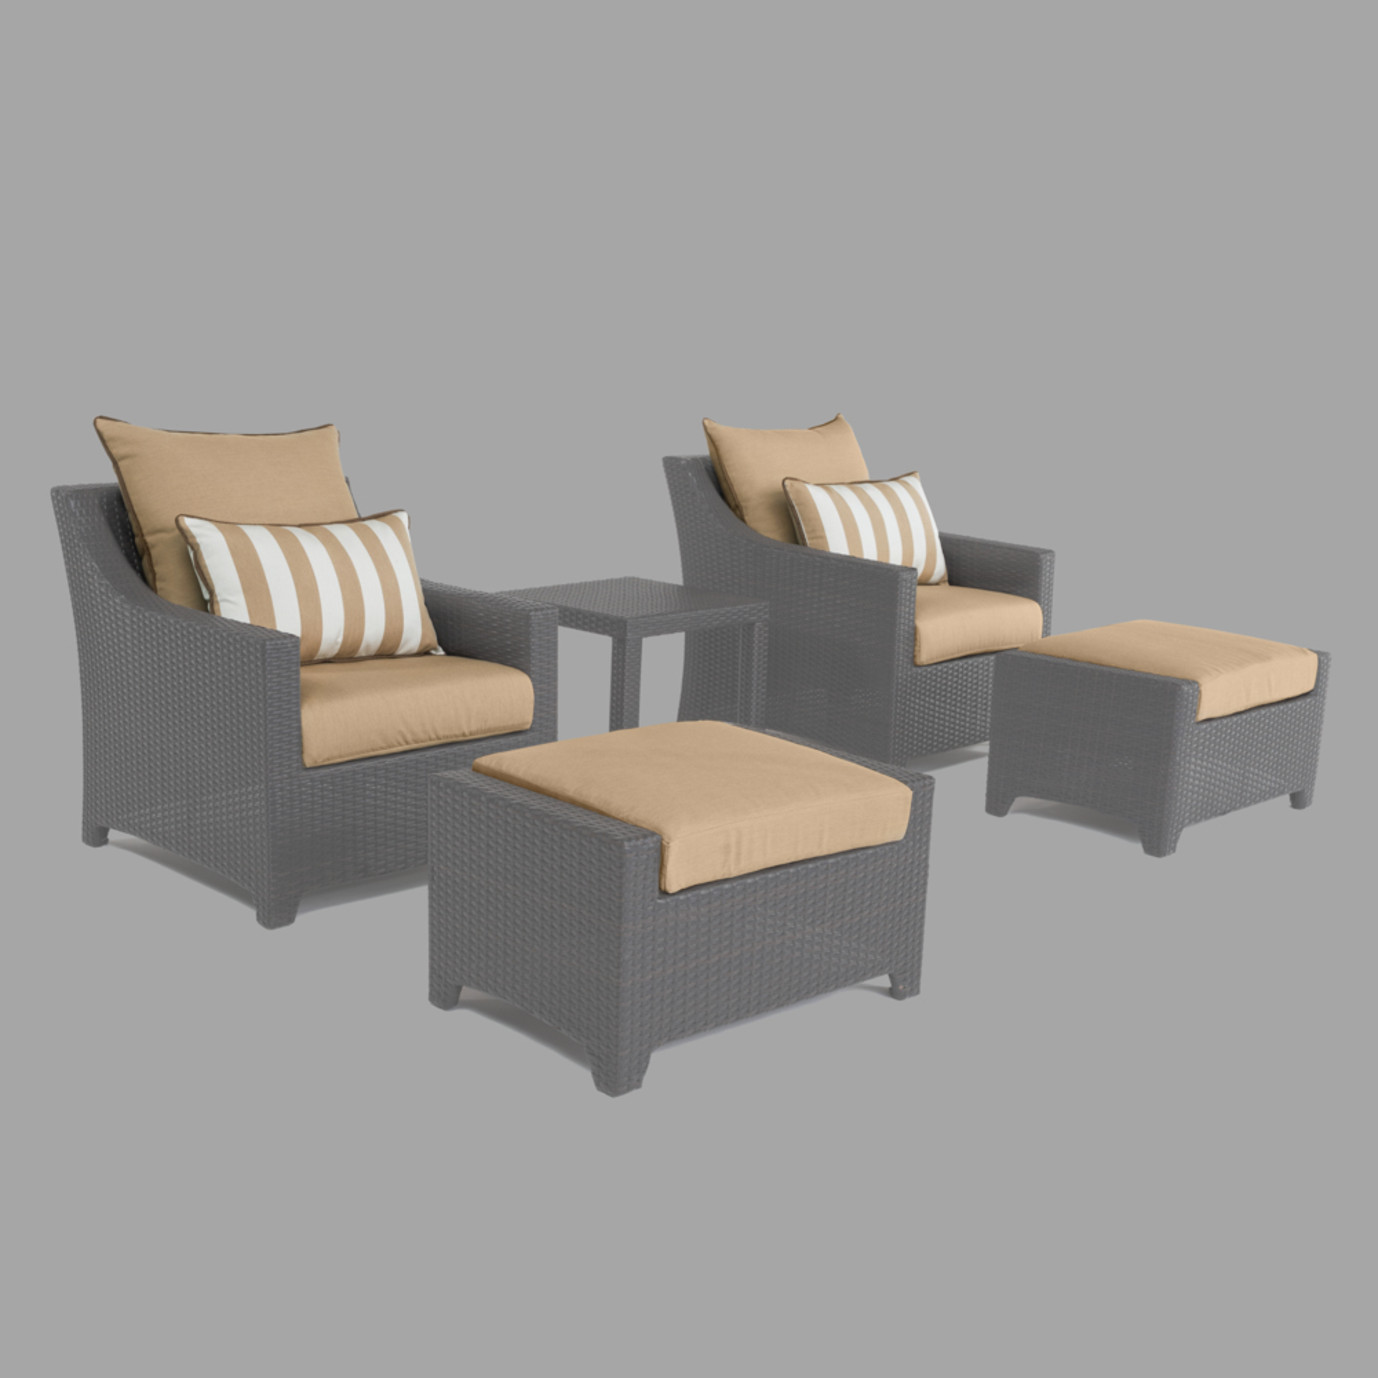 Modular Outdoor 5 Piece Club Cushion Cover Set - Maxim Beige